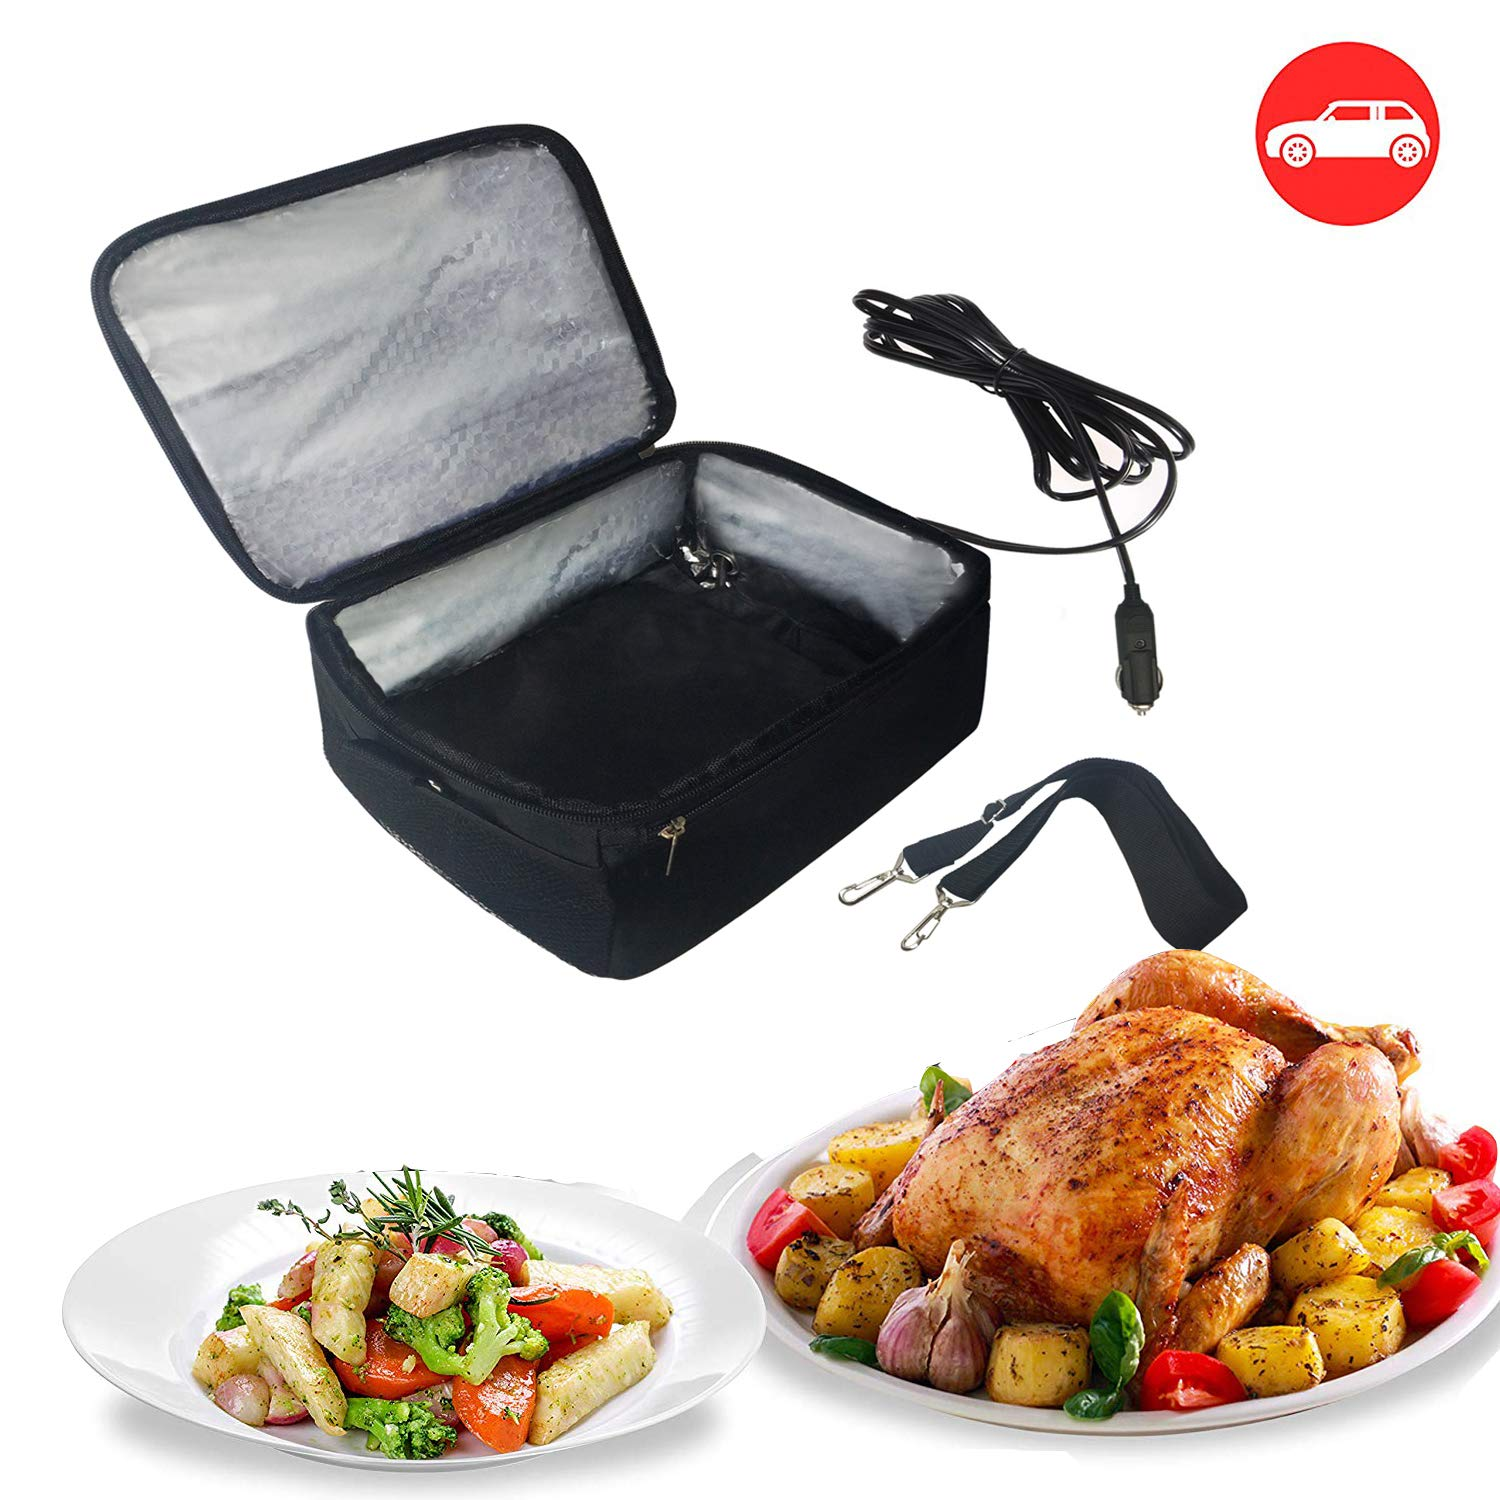 Portable Oven 12V Personal Food Warmer for Prepared Meals Lunch Warmer Reheating at work For Driving, Food Warmer with Lunch Bag for Car 12V (Black) by Alfredx